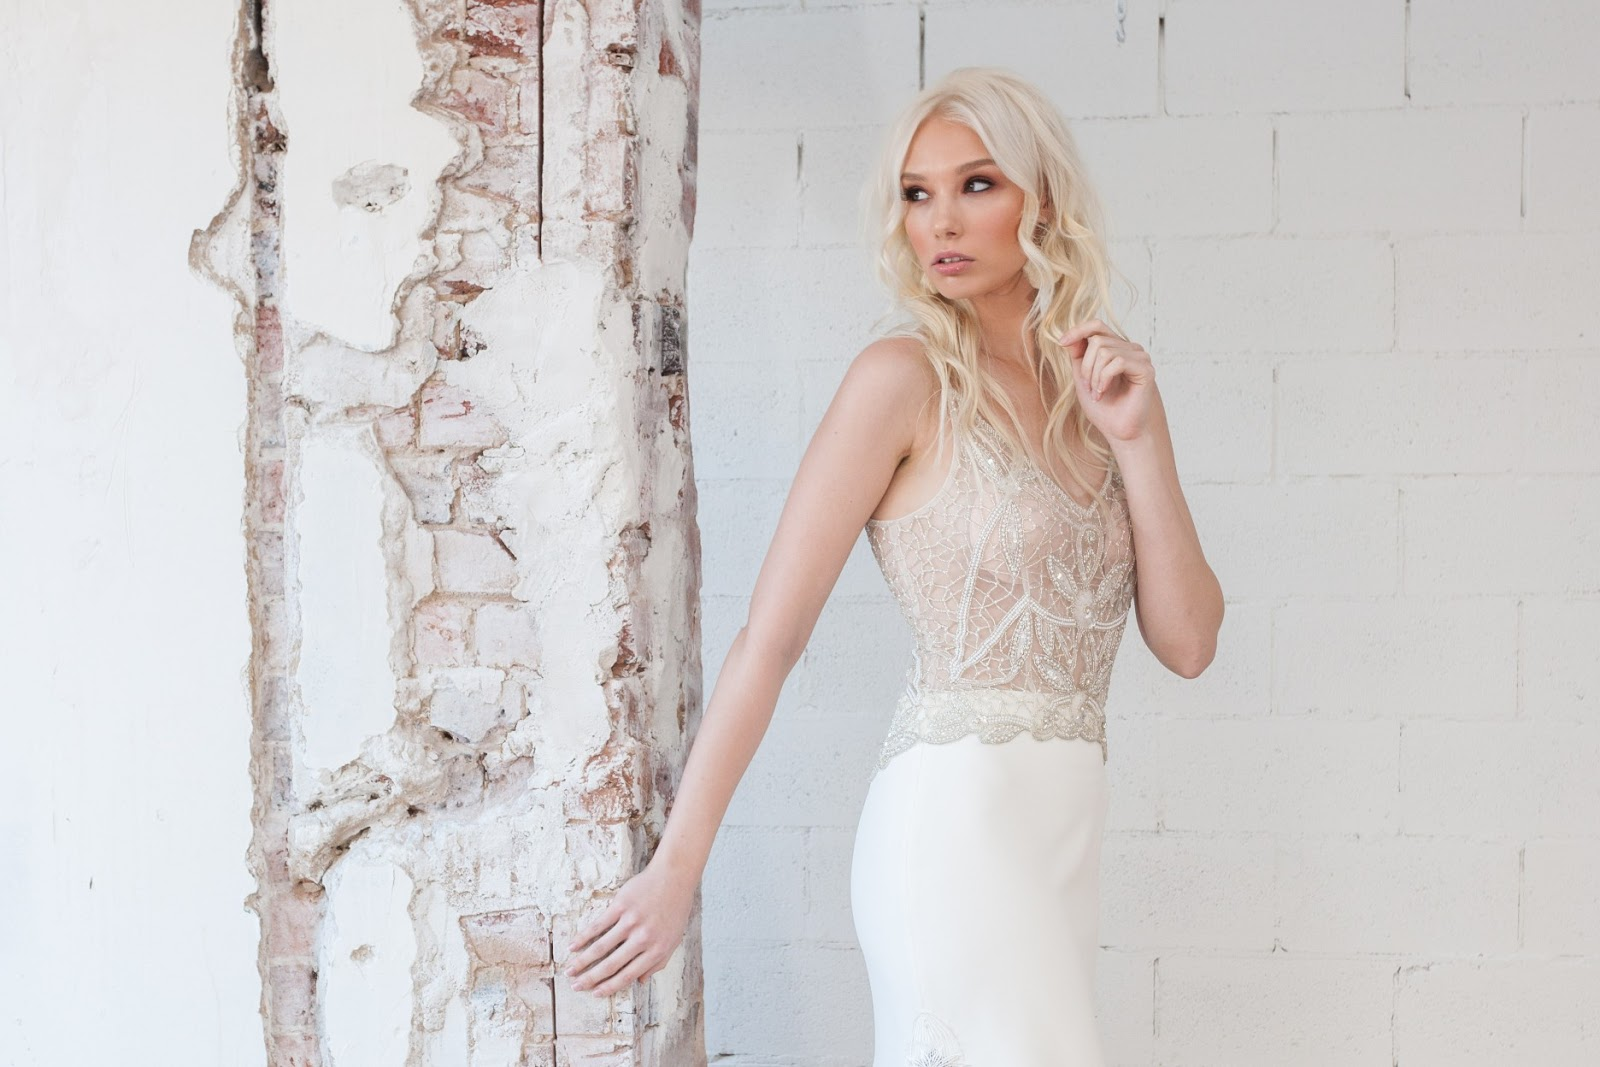 SYDNEY MELBOURNE WEDDING DRESS DESIGNER AUSTRALIA INTERVIEW